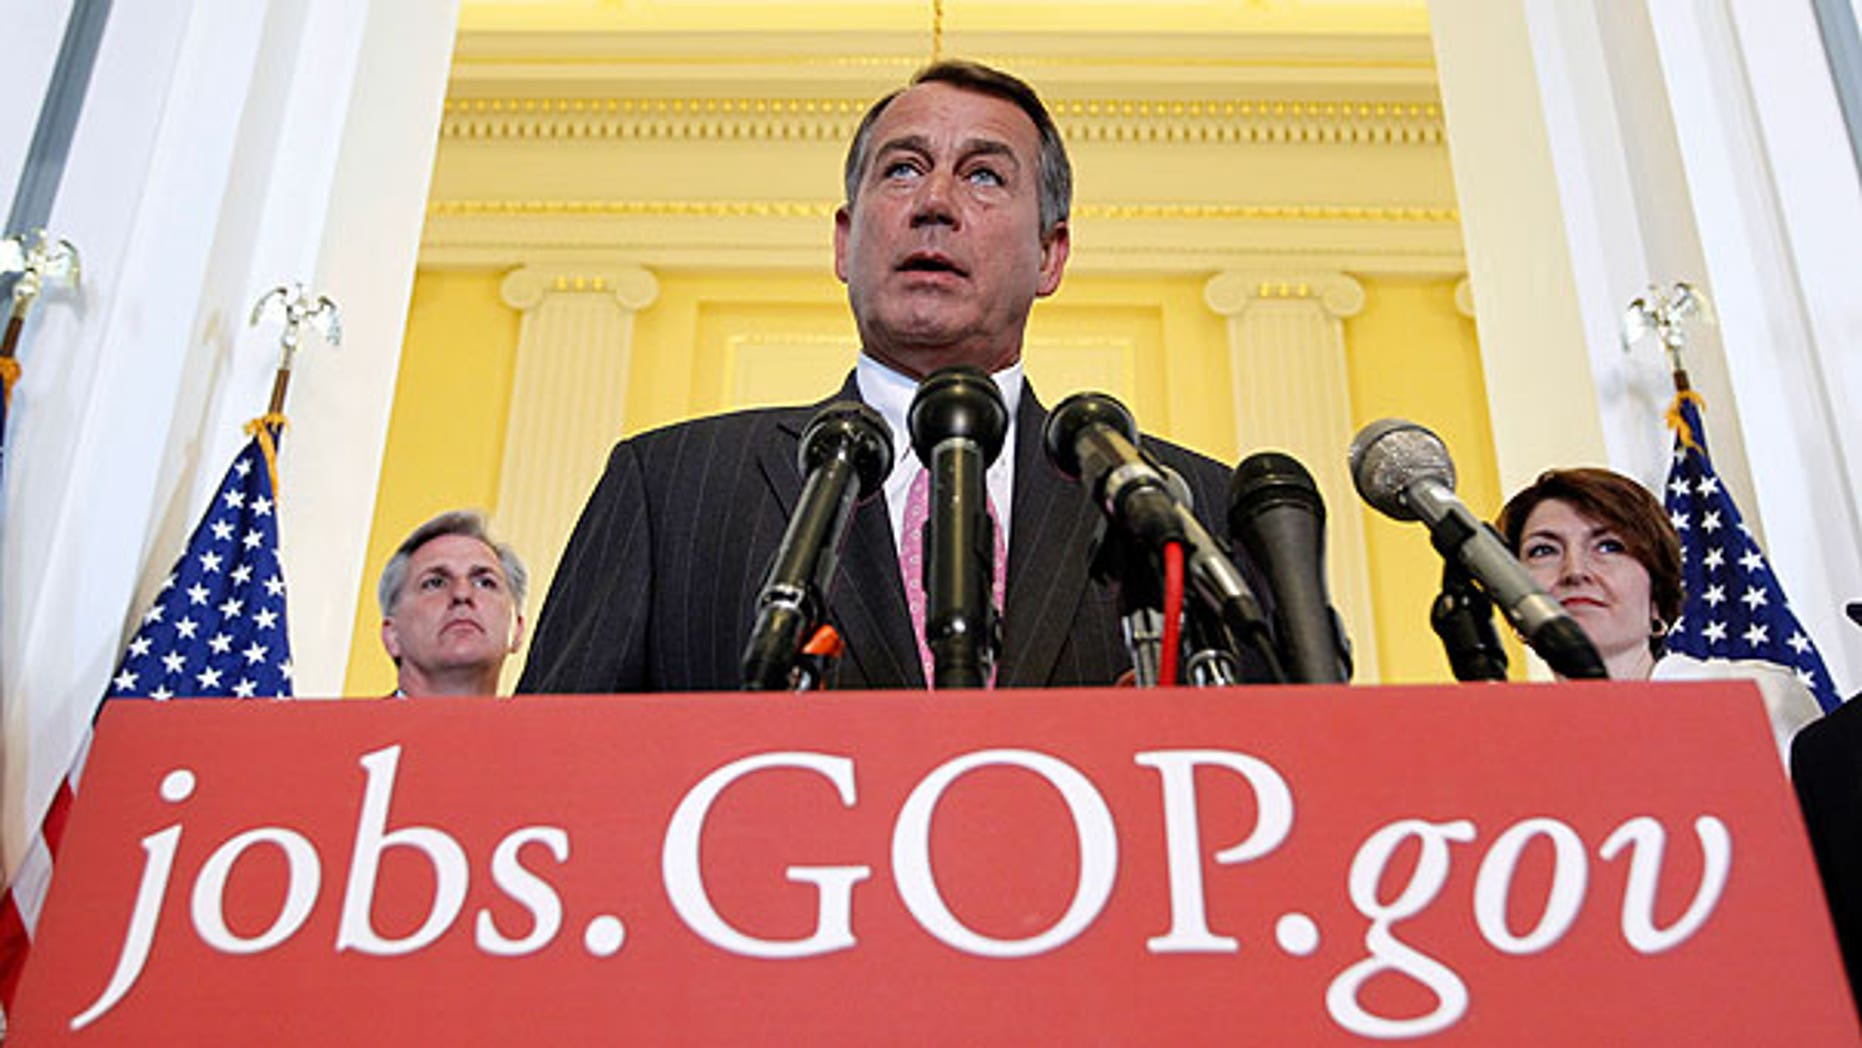 In this June 14, 2011, file photo House Speaker John Boehner with Majority Whip Kevin McCarthy, R-Calif., left, and Rep. Cathy McMorris Rodgers, R-Wash., talks about job creation following a political strategy session on Capitol Hill in Washington.